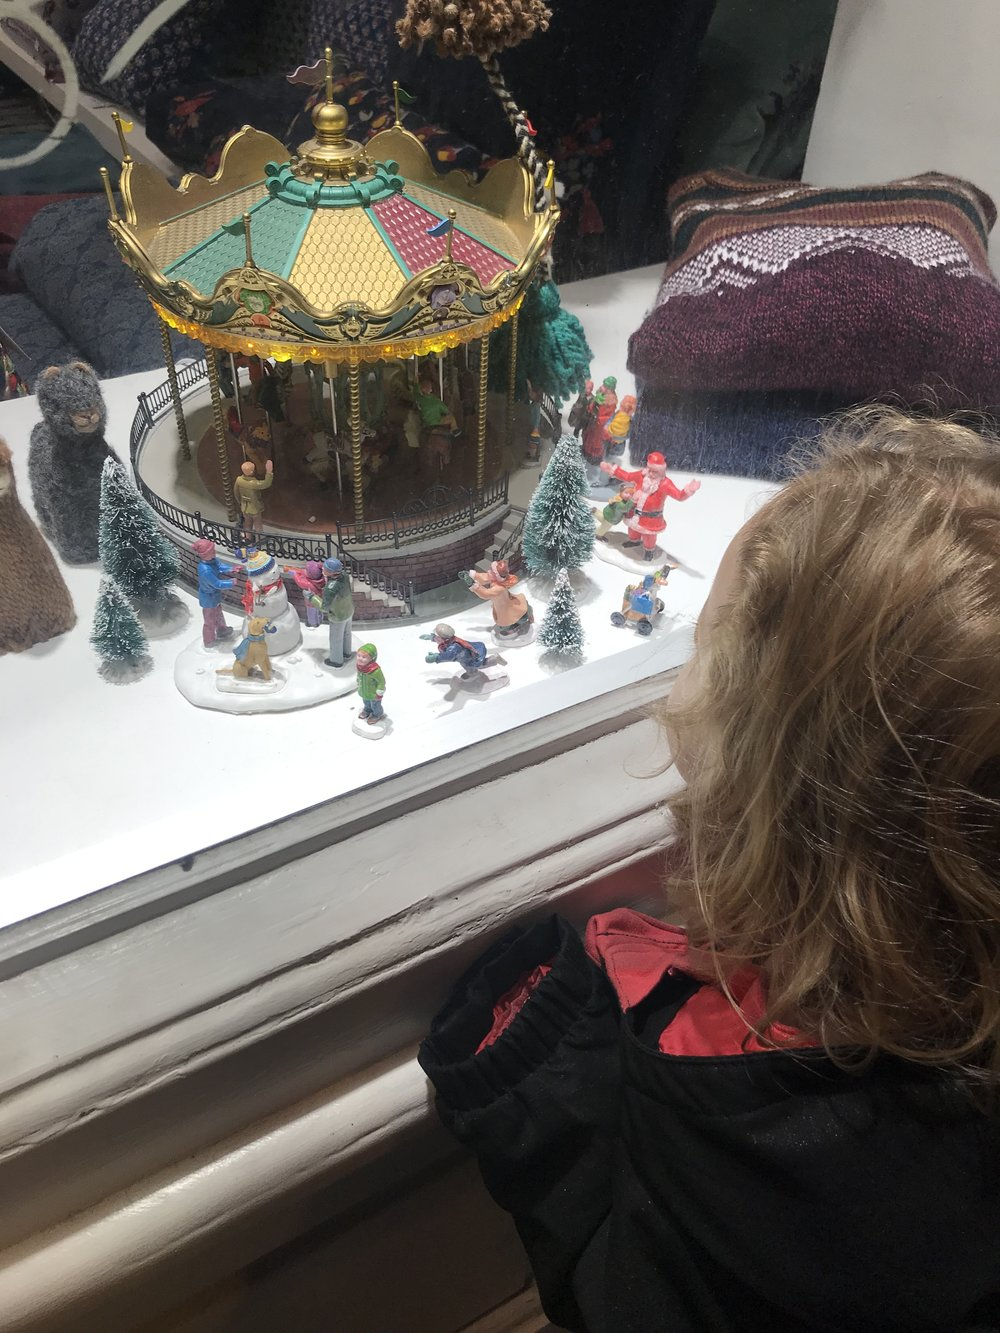 We have visited this window-display carousel several times now, so Ros can live vicariously through all the little teeny people.